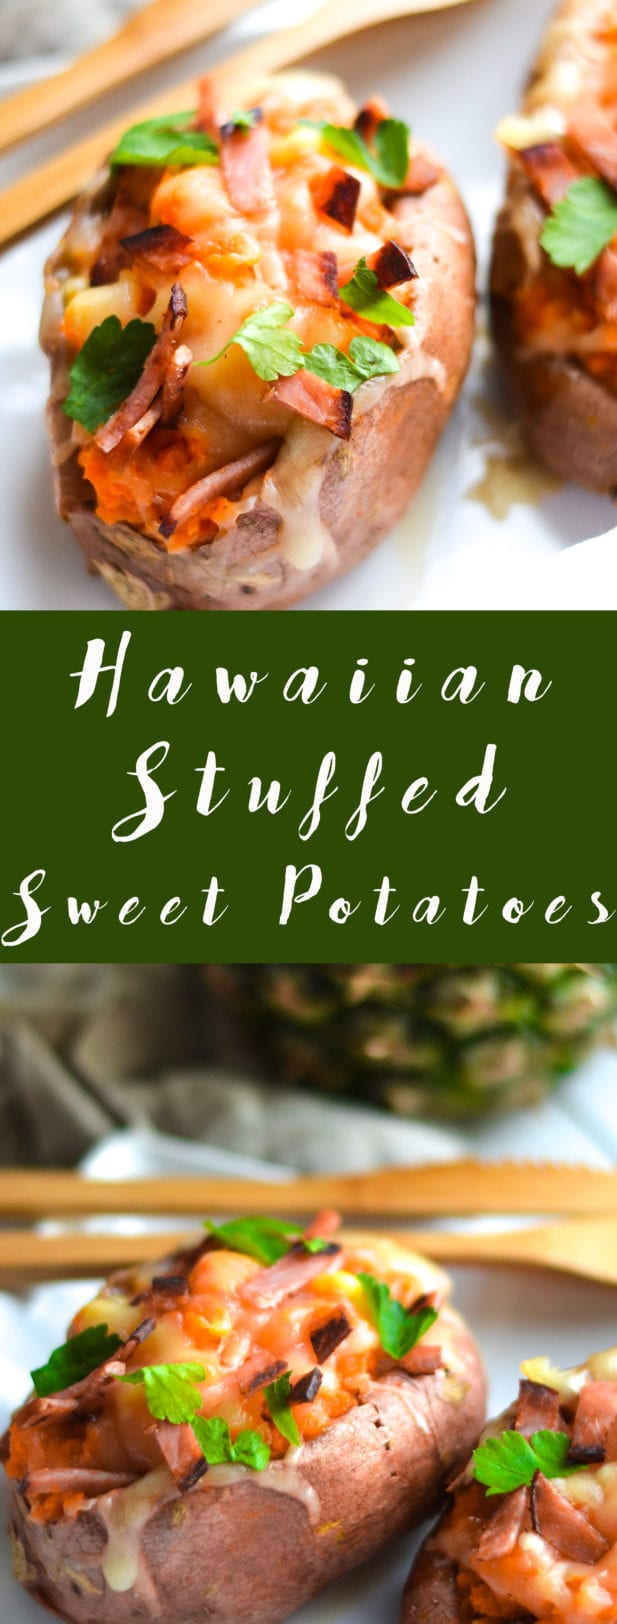 Hawaiian Stuffed Sweet Potatoes